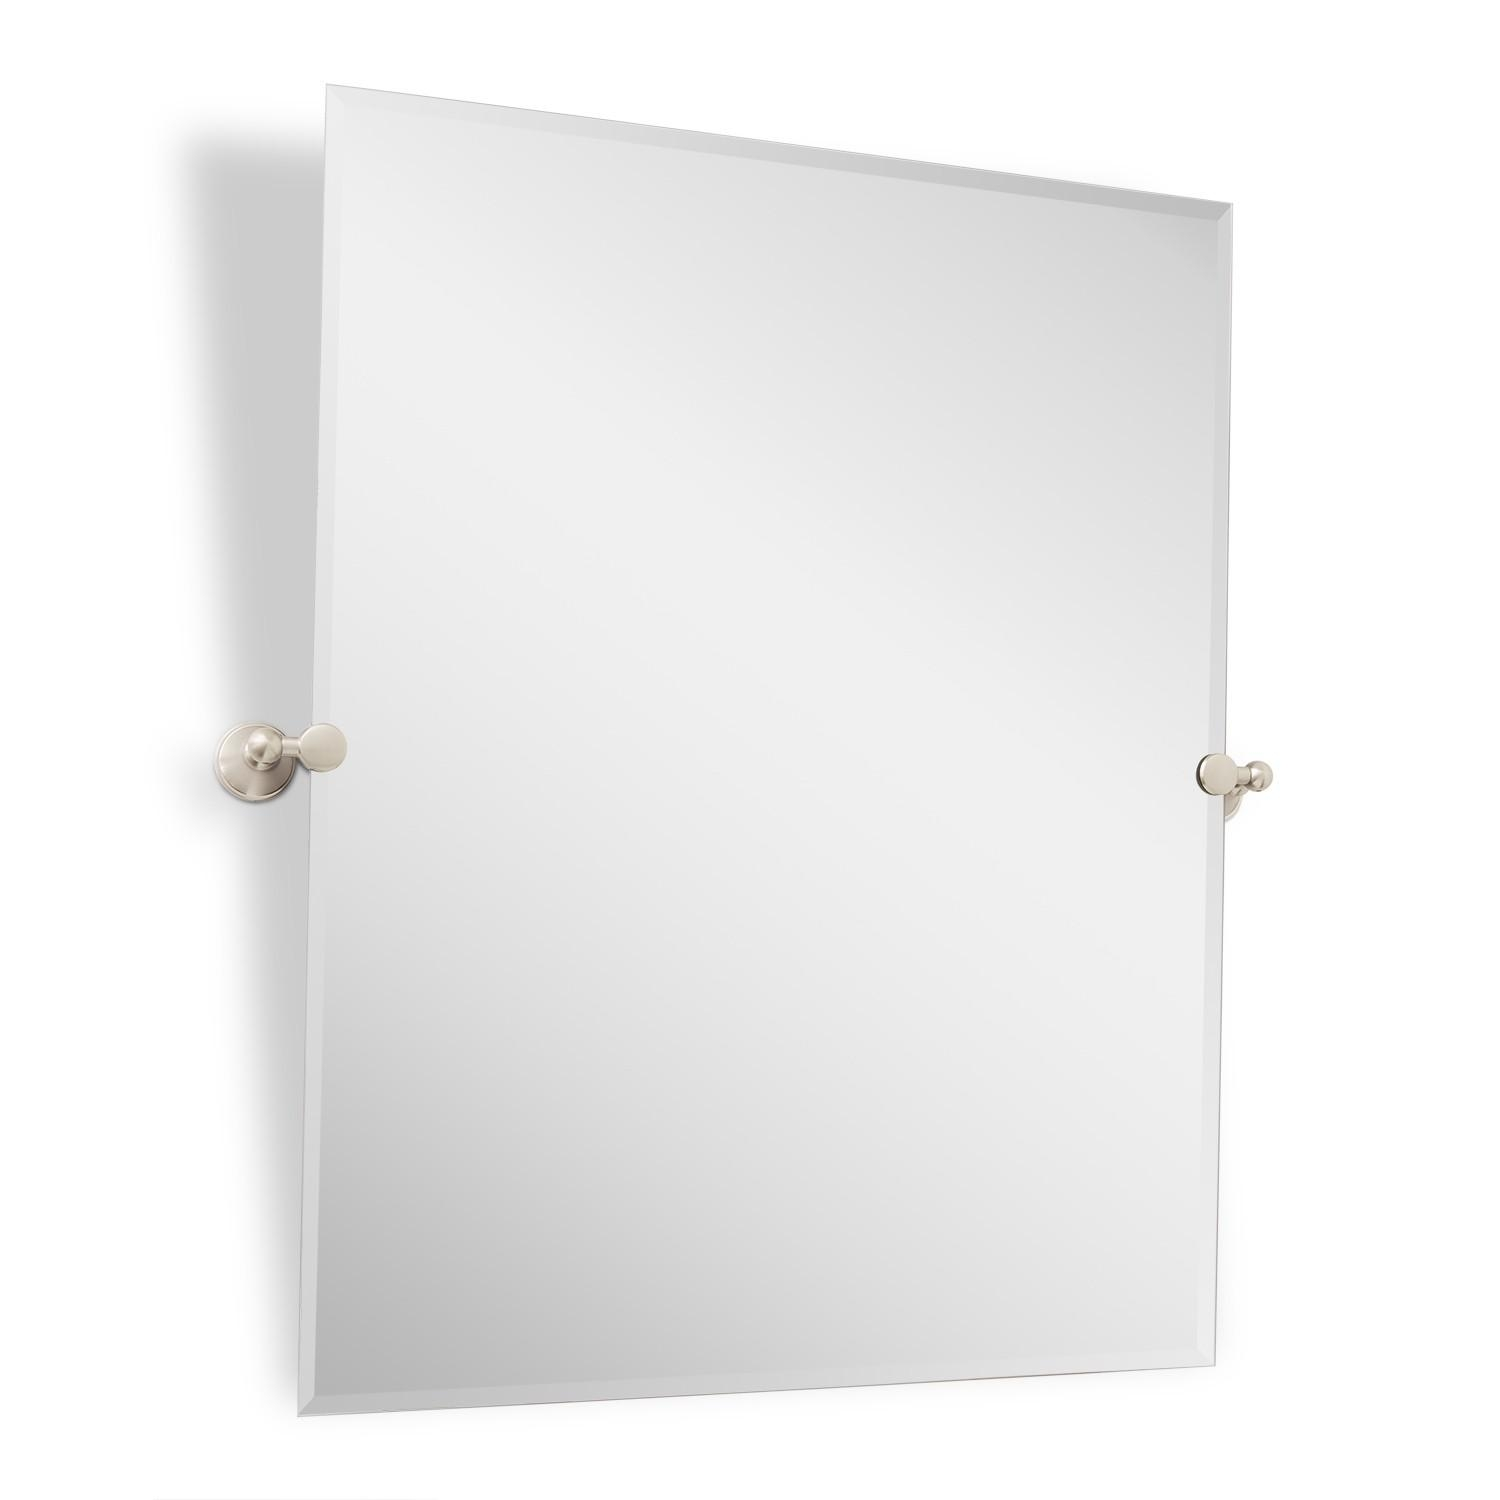 Pivot Bathroom Mirrors And Tilting Mirrors | Signature Hardware Throughout Pivot Mirrors For Bathroom (Image 16 of 20)